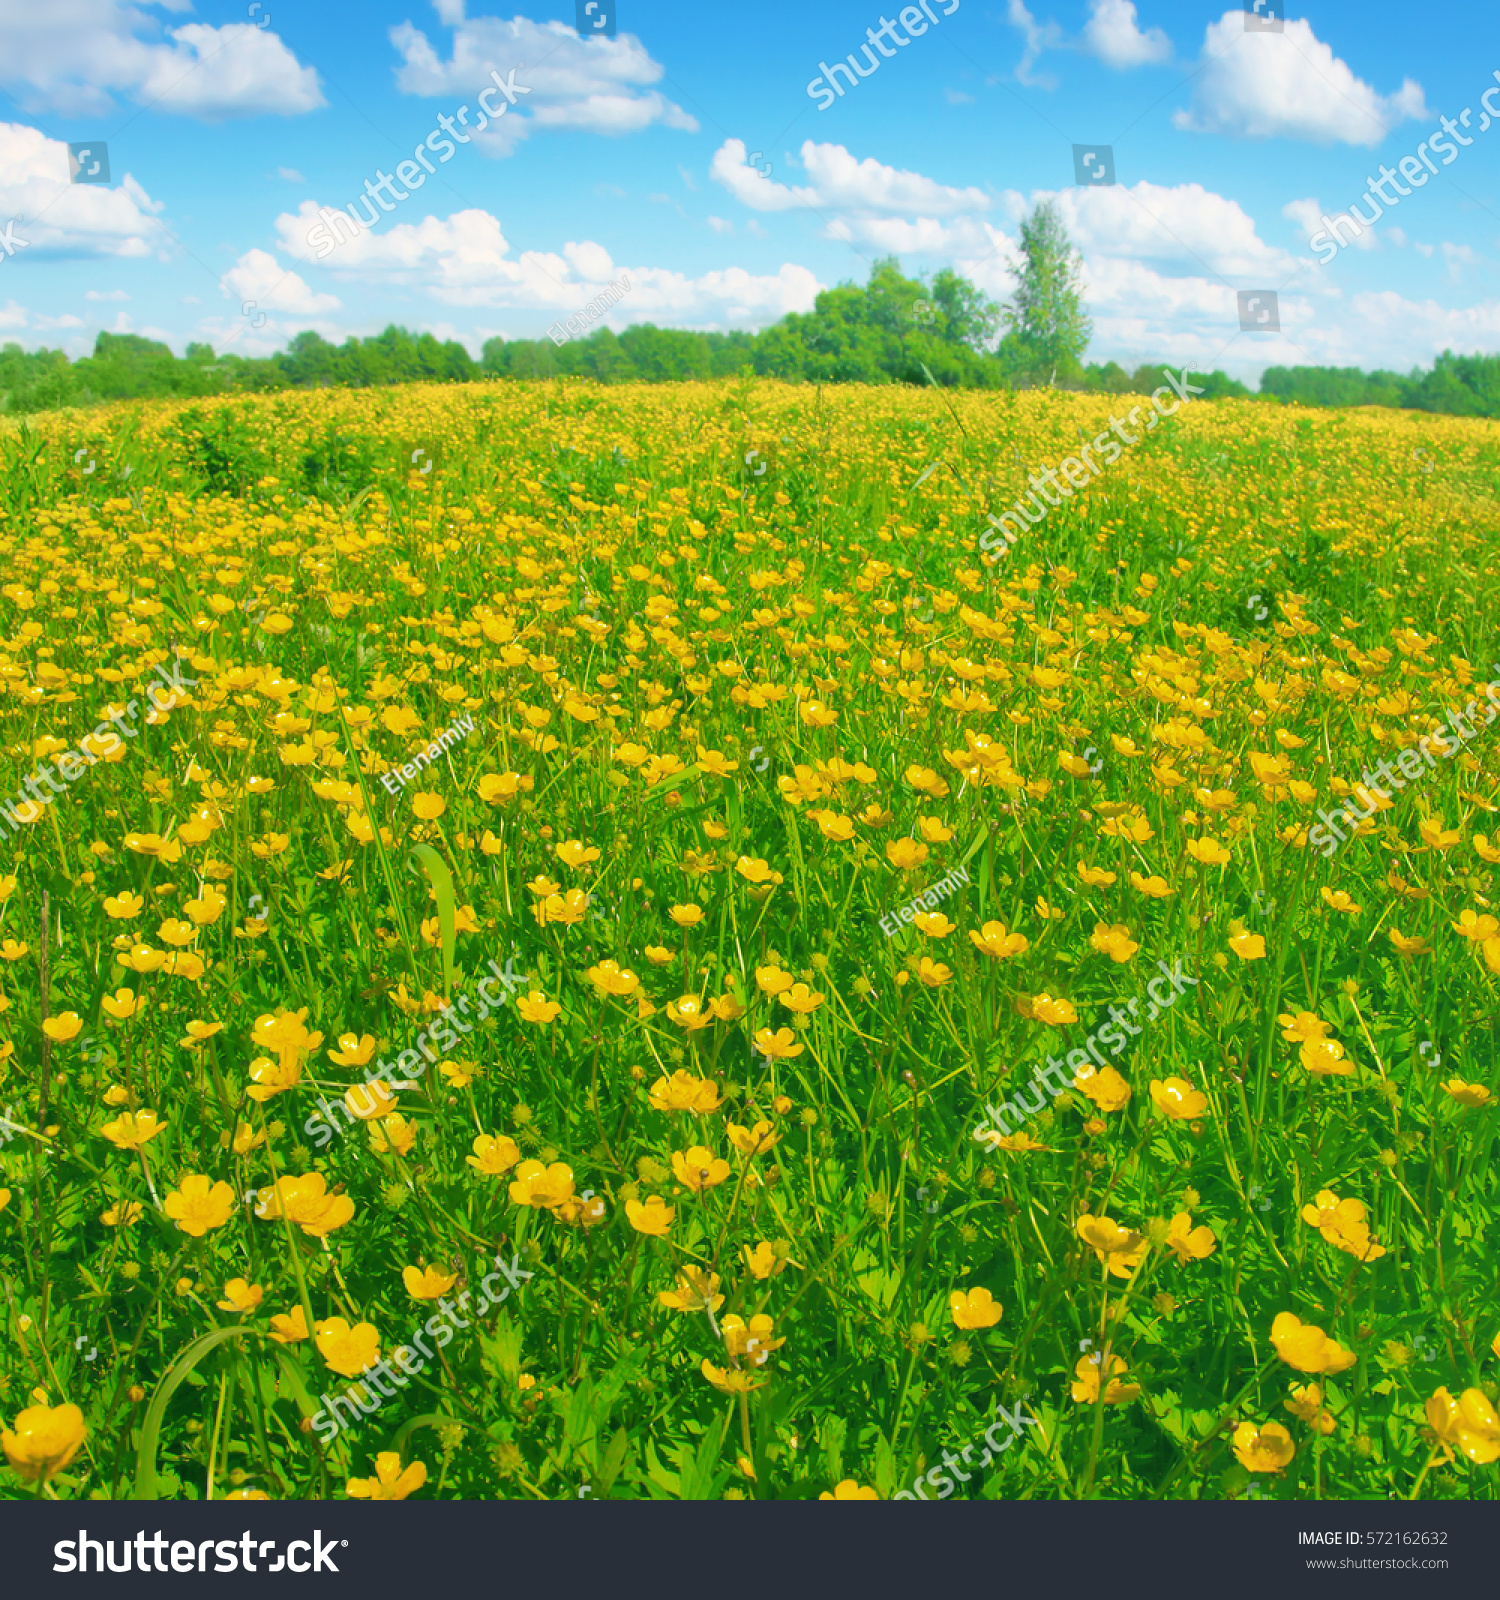 flowers field coud sky -#main